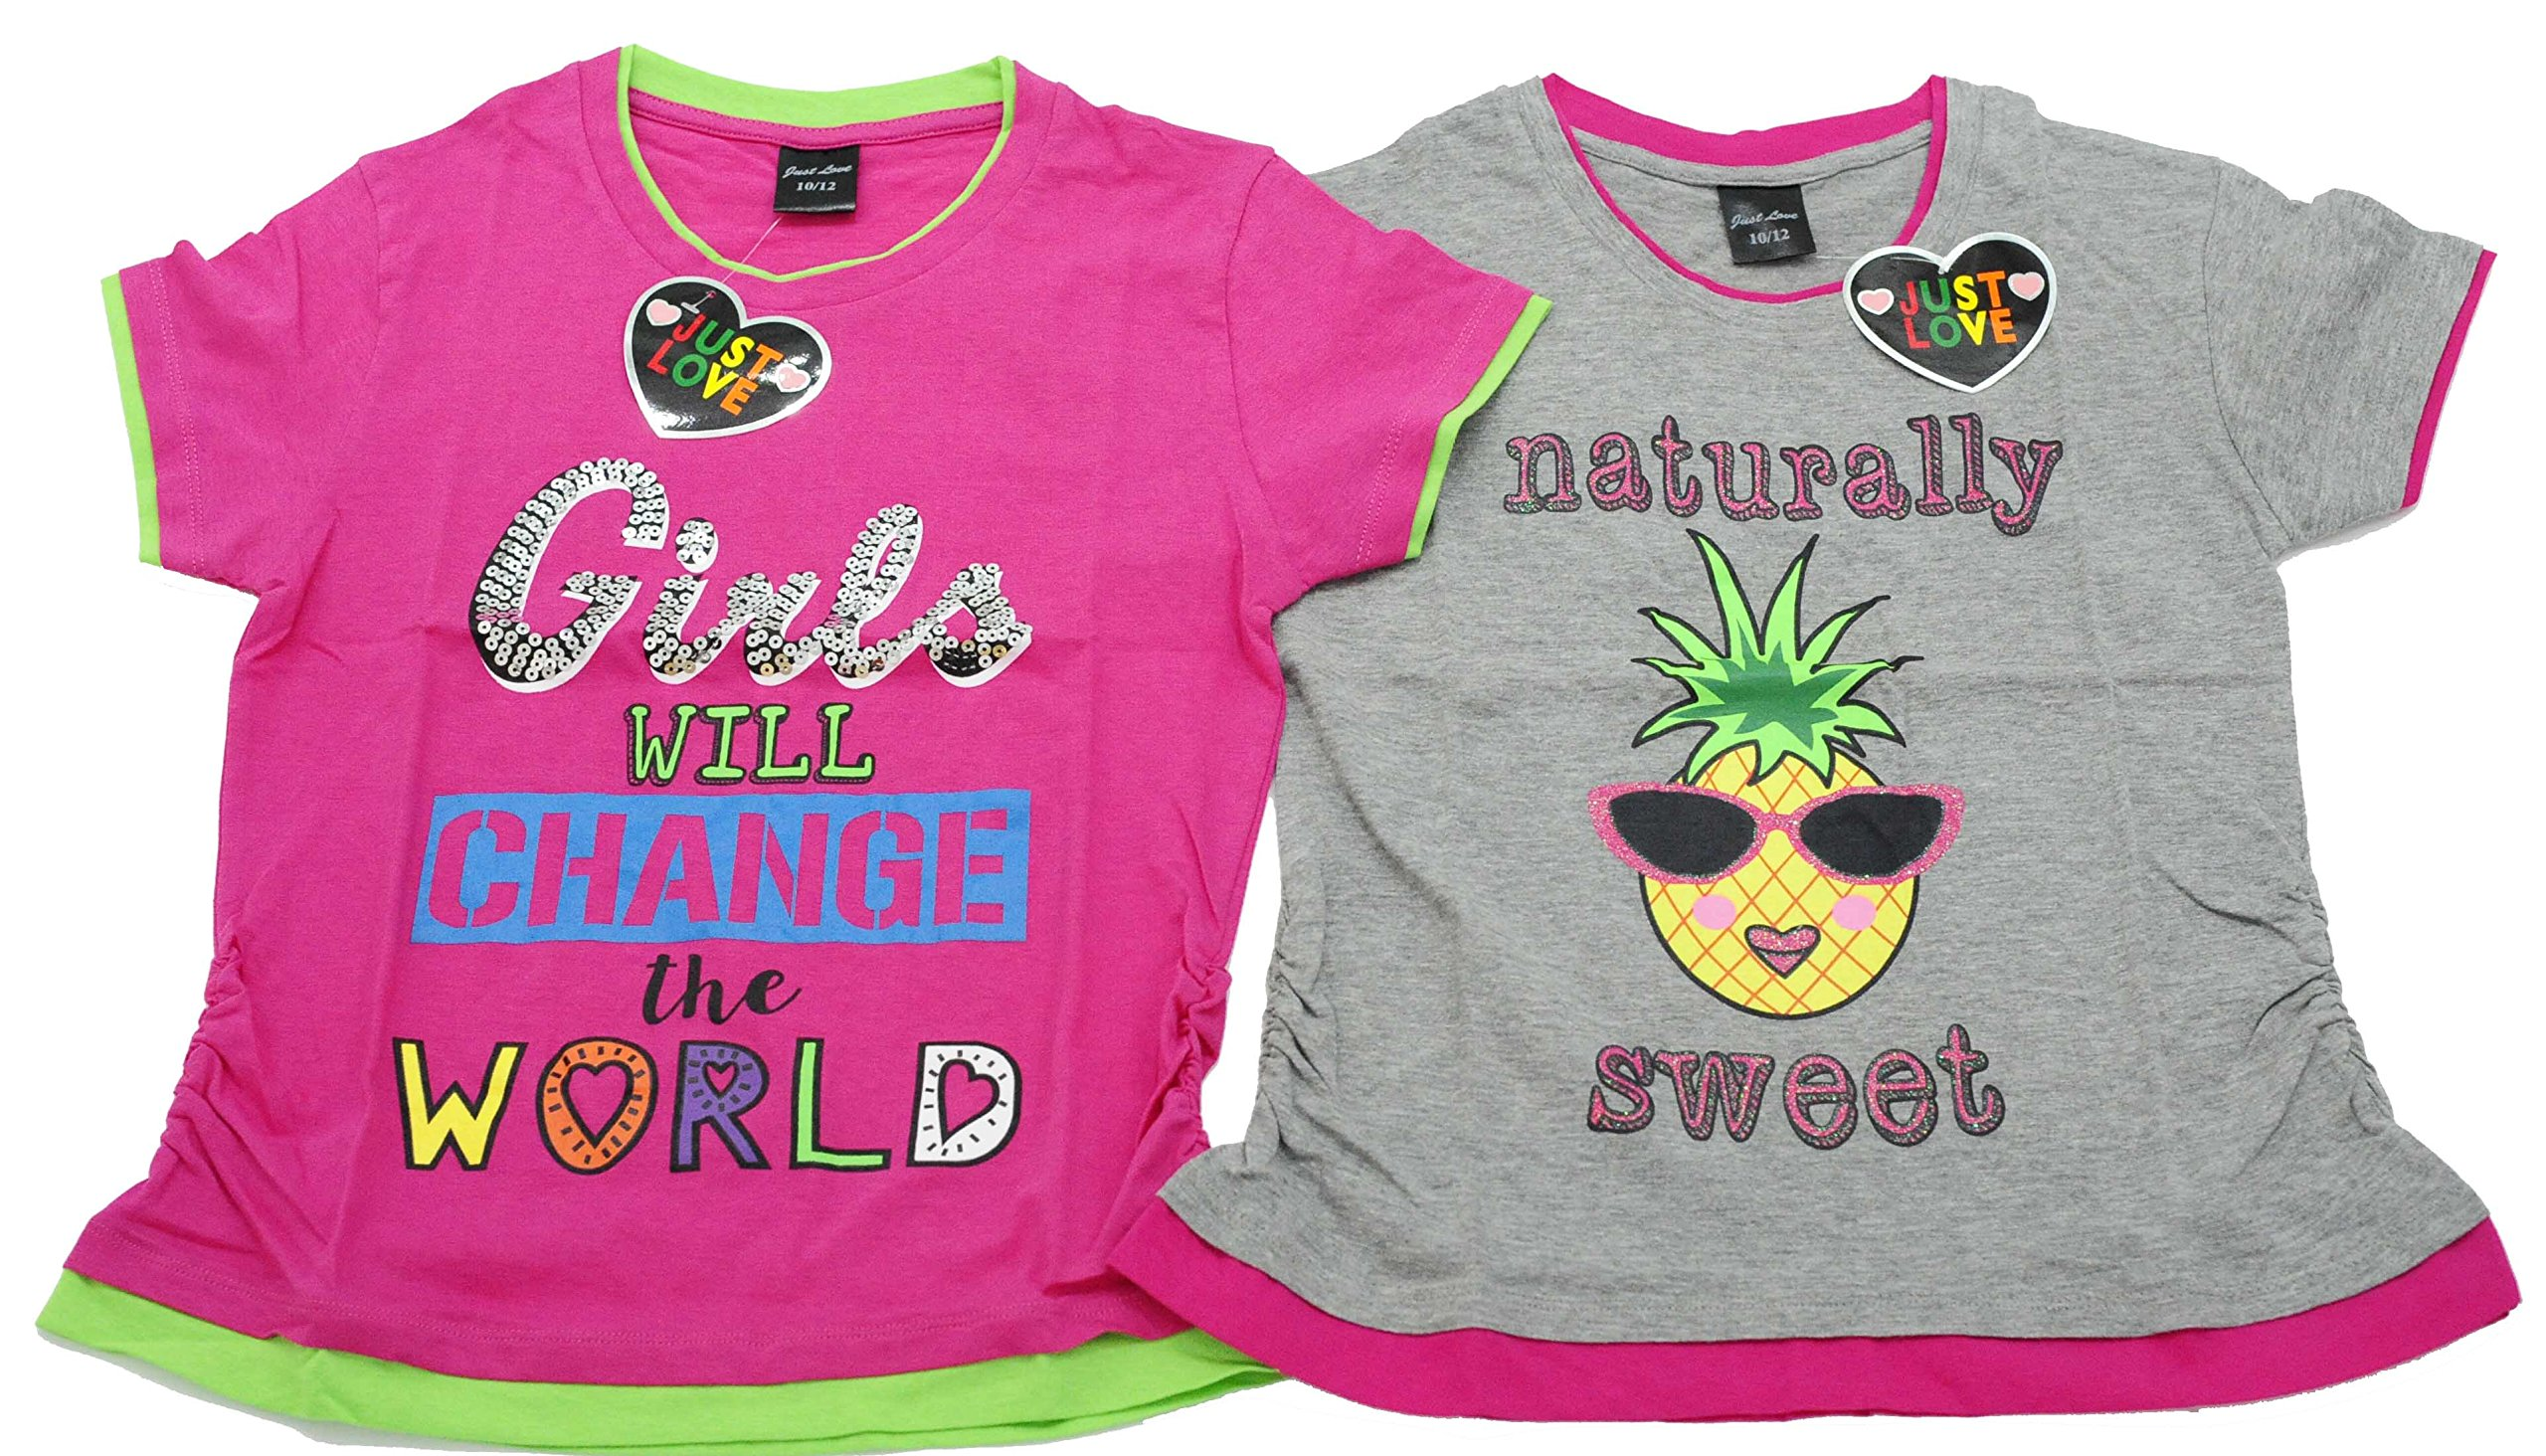 15501-Z-10-12 Just Love T Shirts for Girls (Pack of 2)